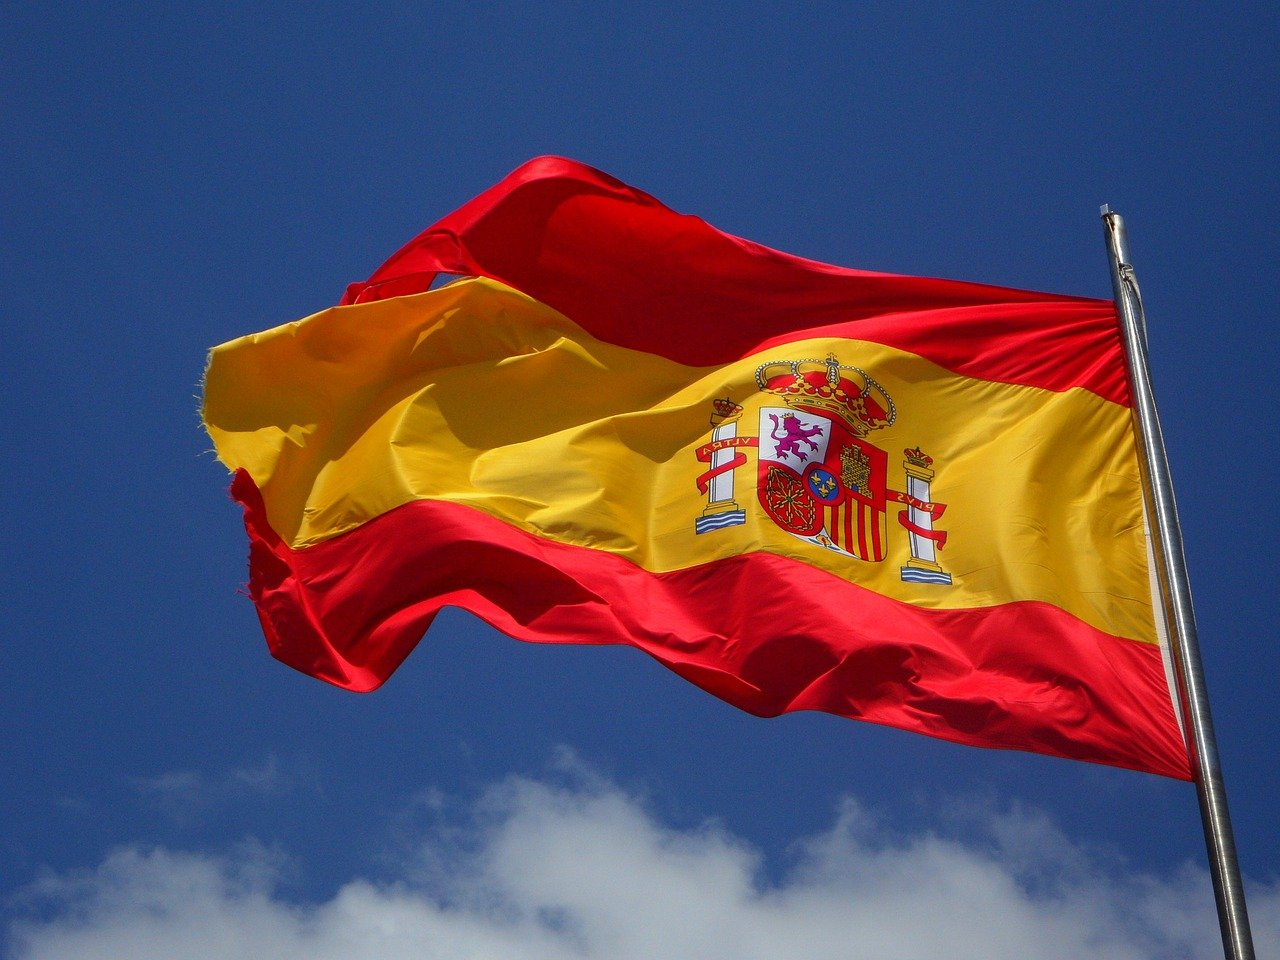 Spanienflagge (c) Pixabay